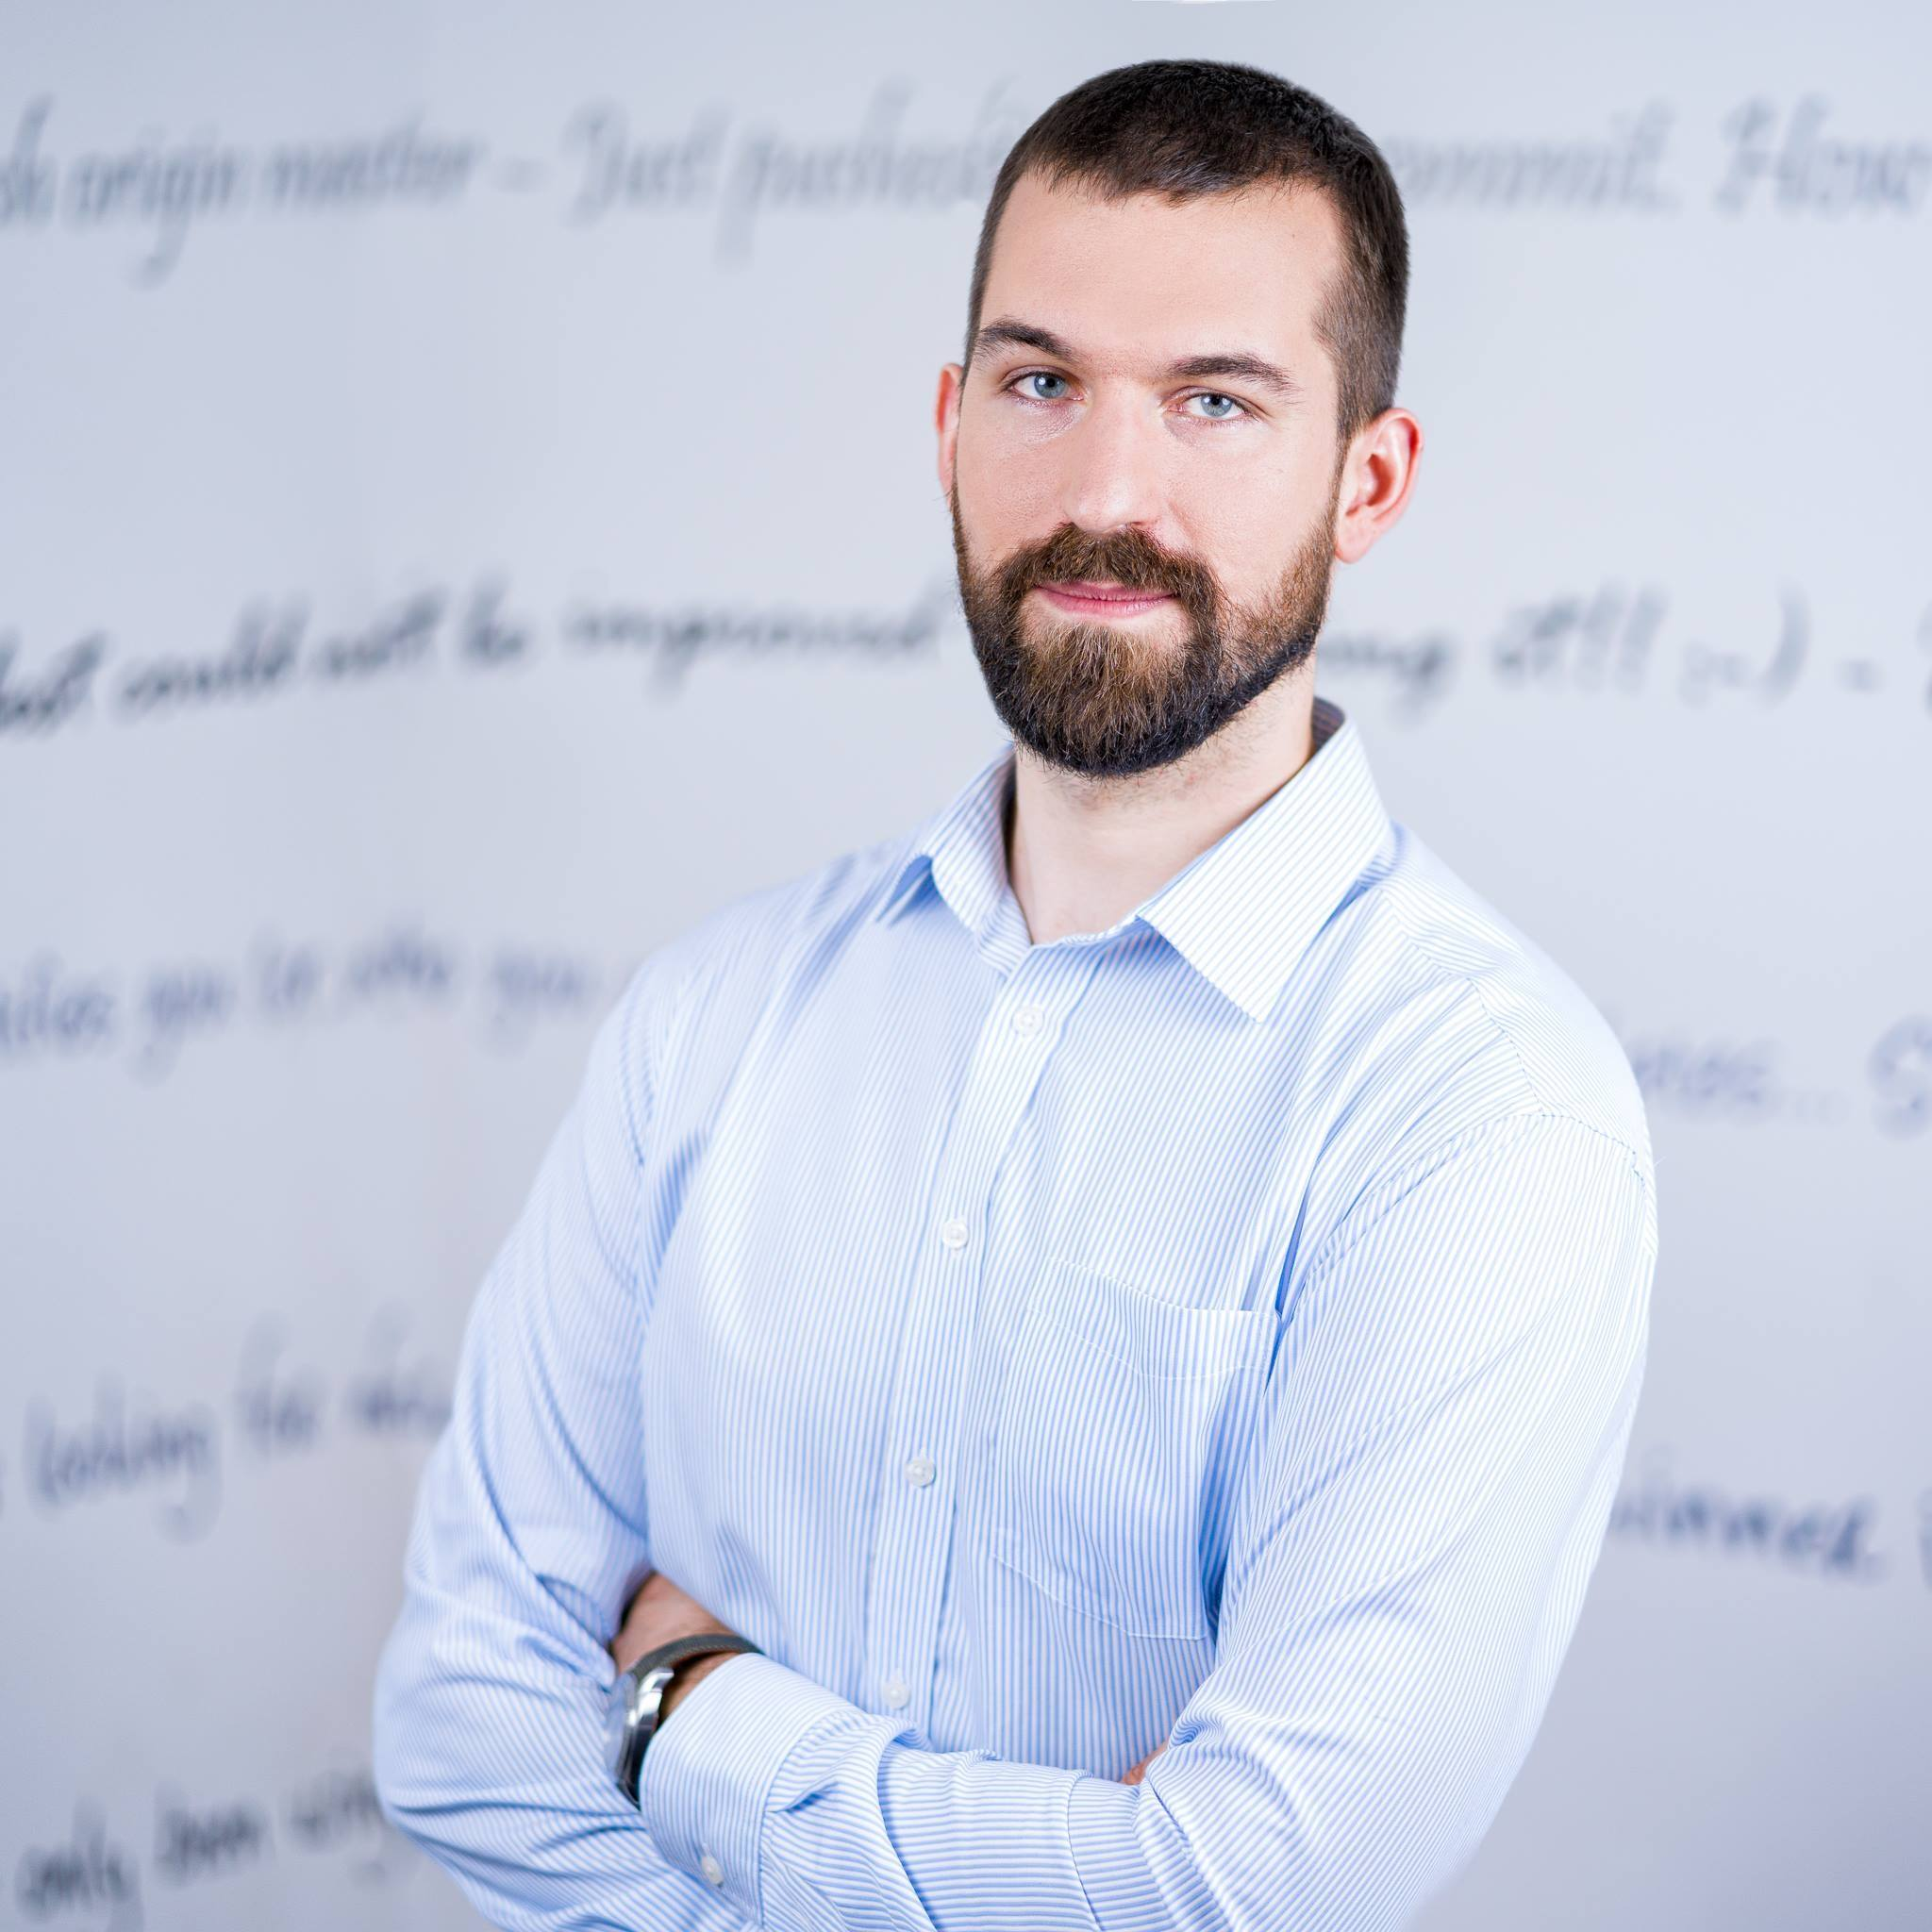 """Tomasz Korwin-Gajkowski   Software Developer, Consultant and Adviser working on DLT/Blockchain, Smart Contracts and cryptocurrency related projects. Currently Blockchain Team Lead at KodakOne platform. Member of the """"Blockchain/DLT and digital currencies"""" workgroup lead by the Polish Ministry of Digital Affairs.Co-founder of Crypto@Cracow - the biggest blockchain-related meetup group in Poland."""